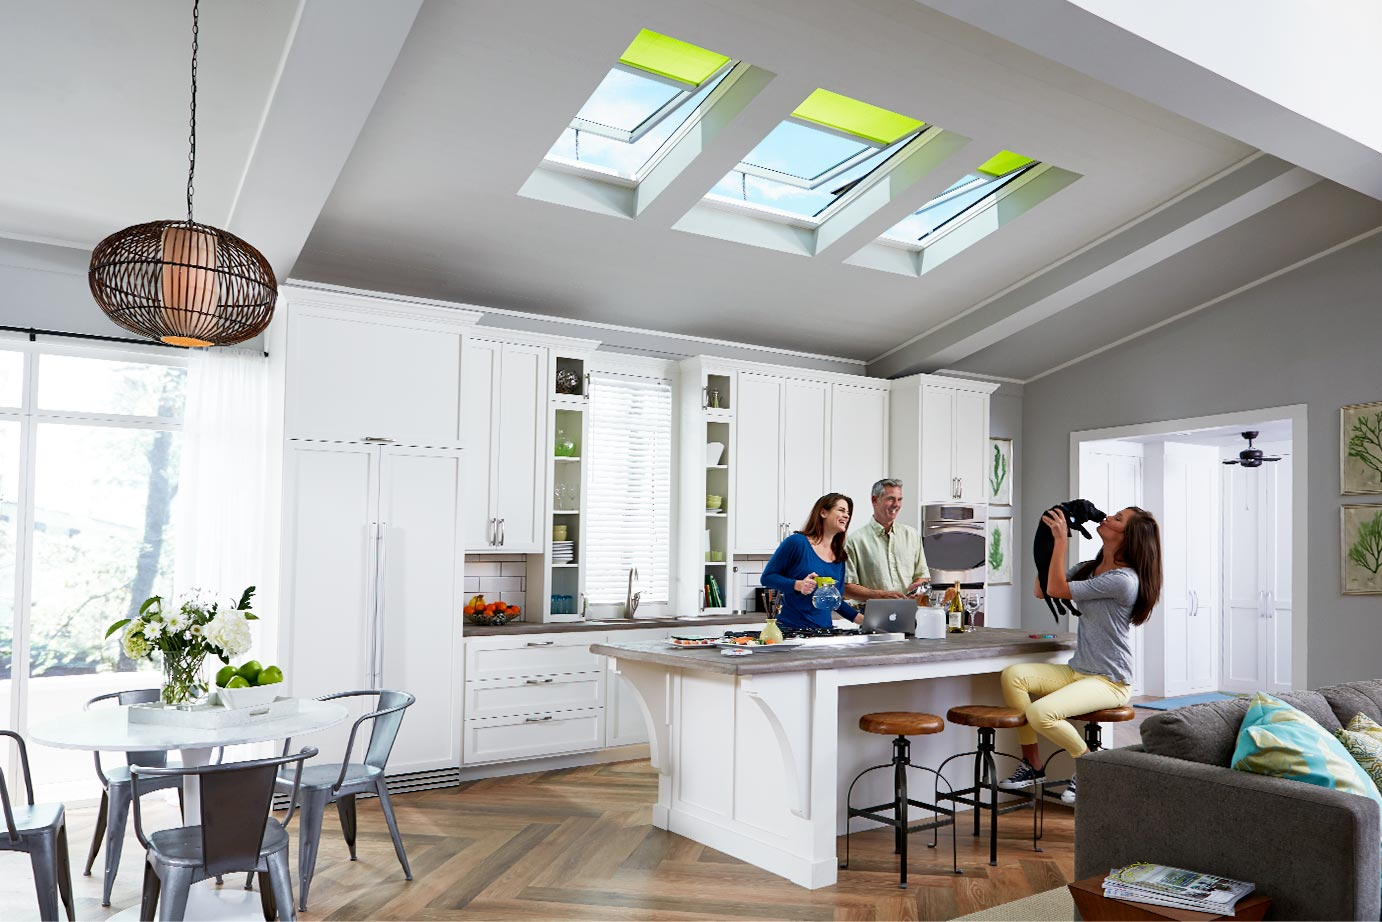 kitchen green blinds?h=922&la=en&w=1382&cc=grid_12&key=145917965341898&sw=960 velux frequently asked questions velux klf 100 wiring diagram at sewacar.co